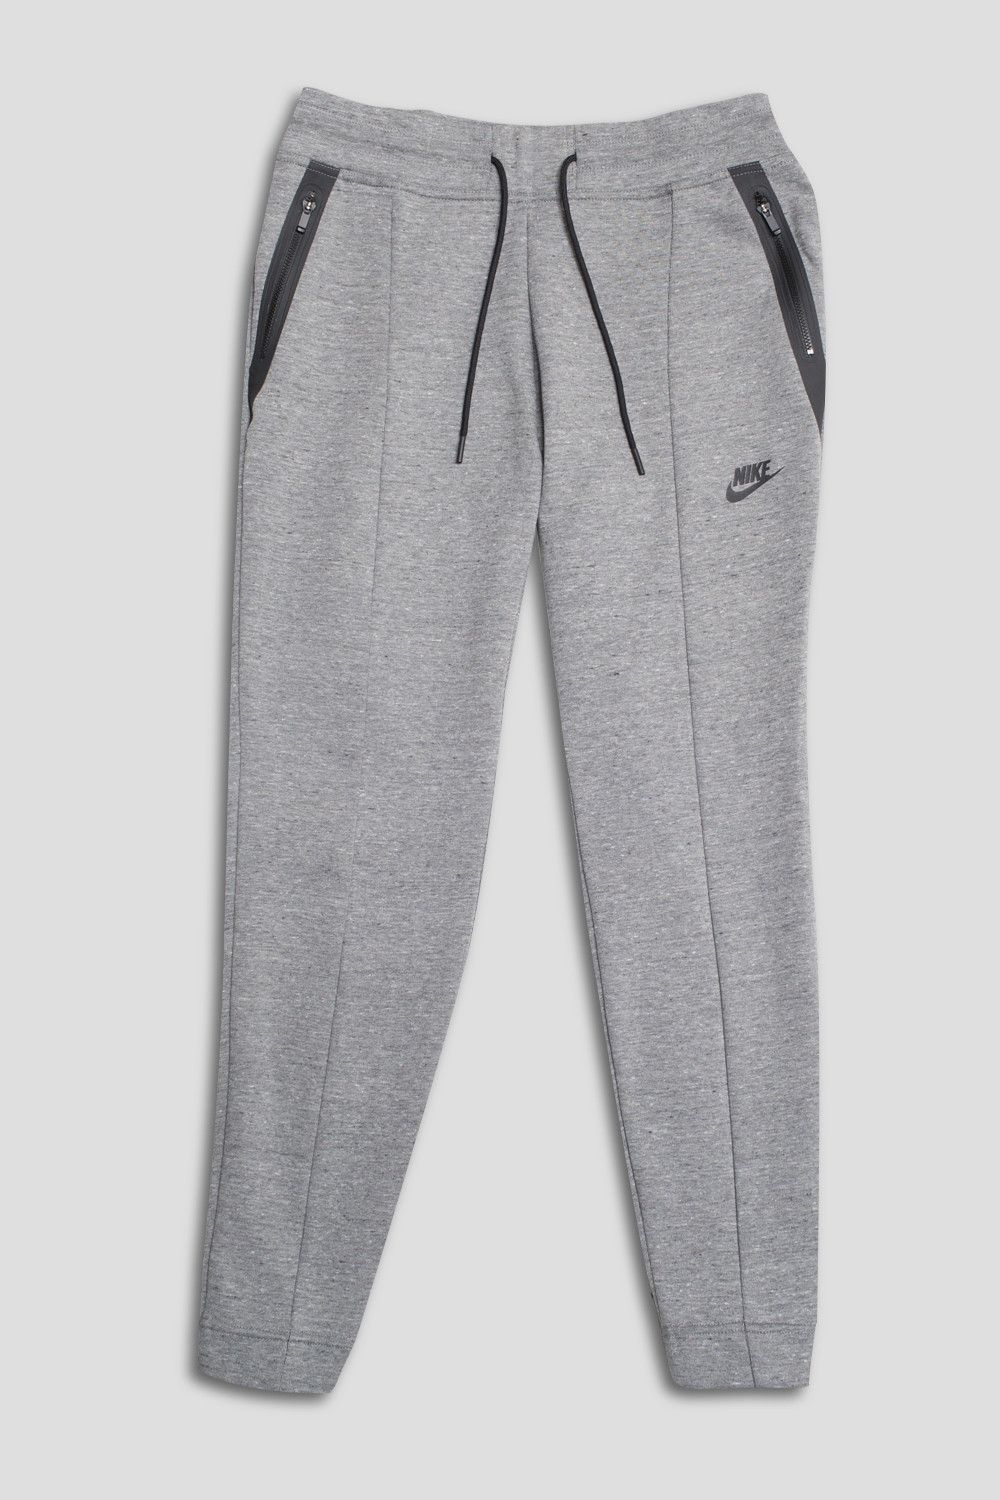 NIKE WOMENS SPORTSWEAR TECH FLEECE PANT CARBON HEATHER